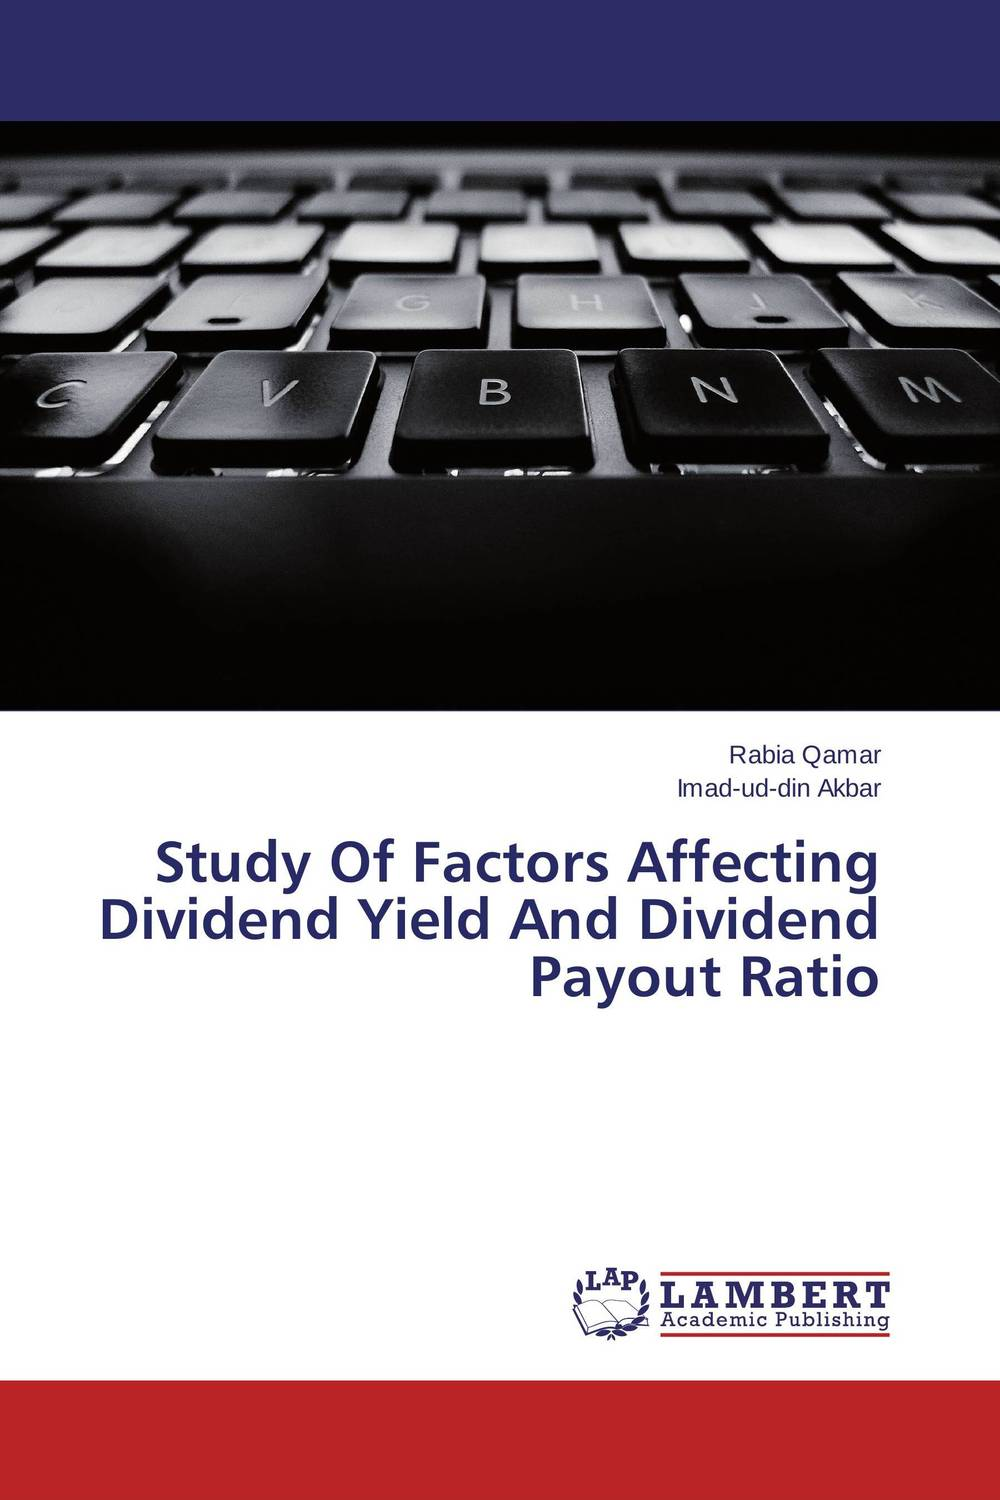 Study Of Factors Affecting Dividend Yield And Dividend Payout Ratio rabia qamar and imad ud din akbar study of factors affecting dividend yield and dividend payout ratio